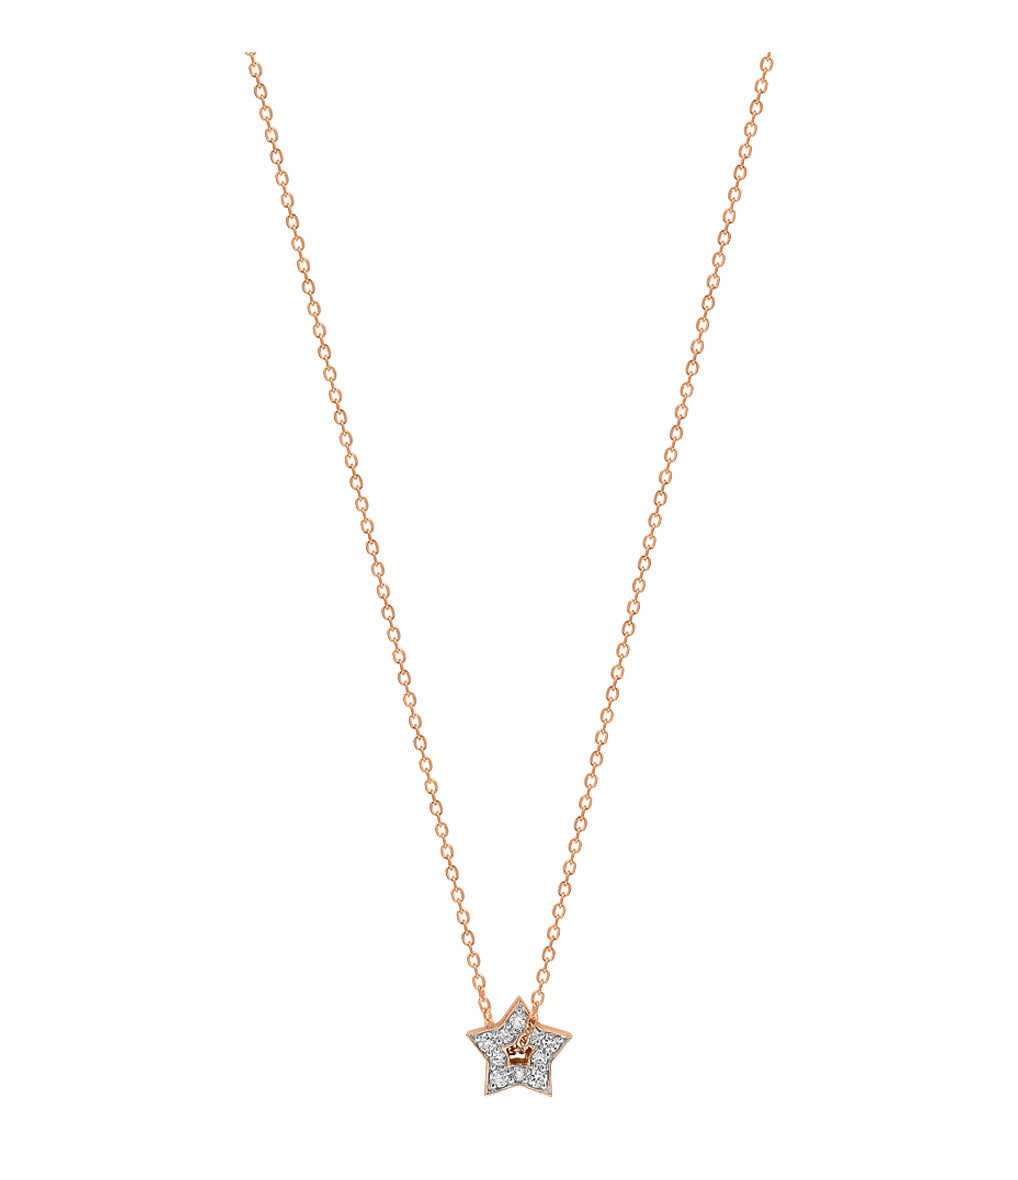 GINETTE_NY - Collier Milky Way Mini Etoile Or Rose DIAMANTs